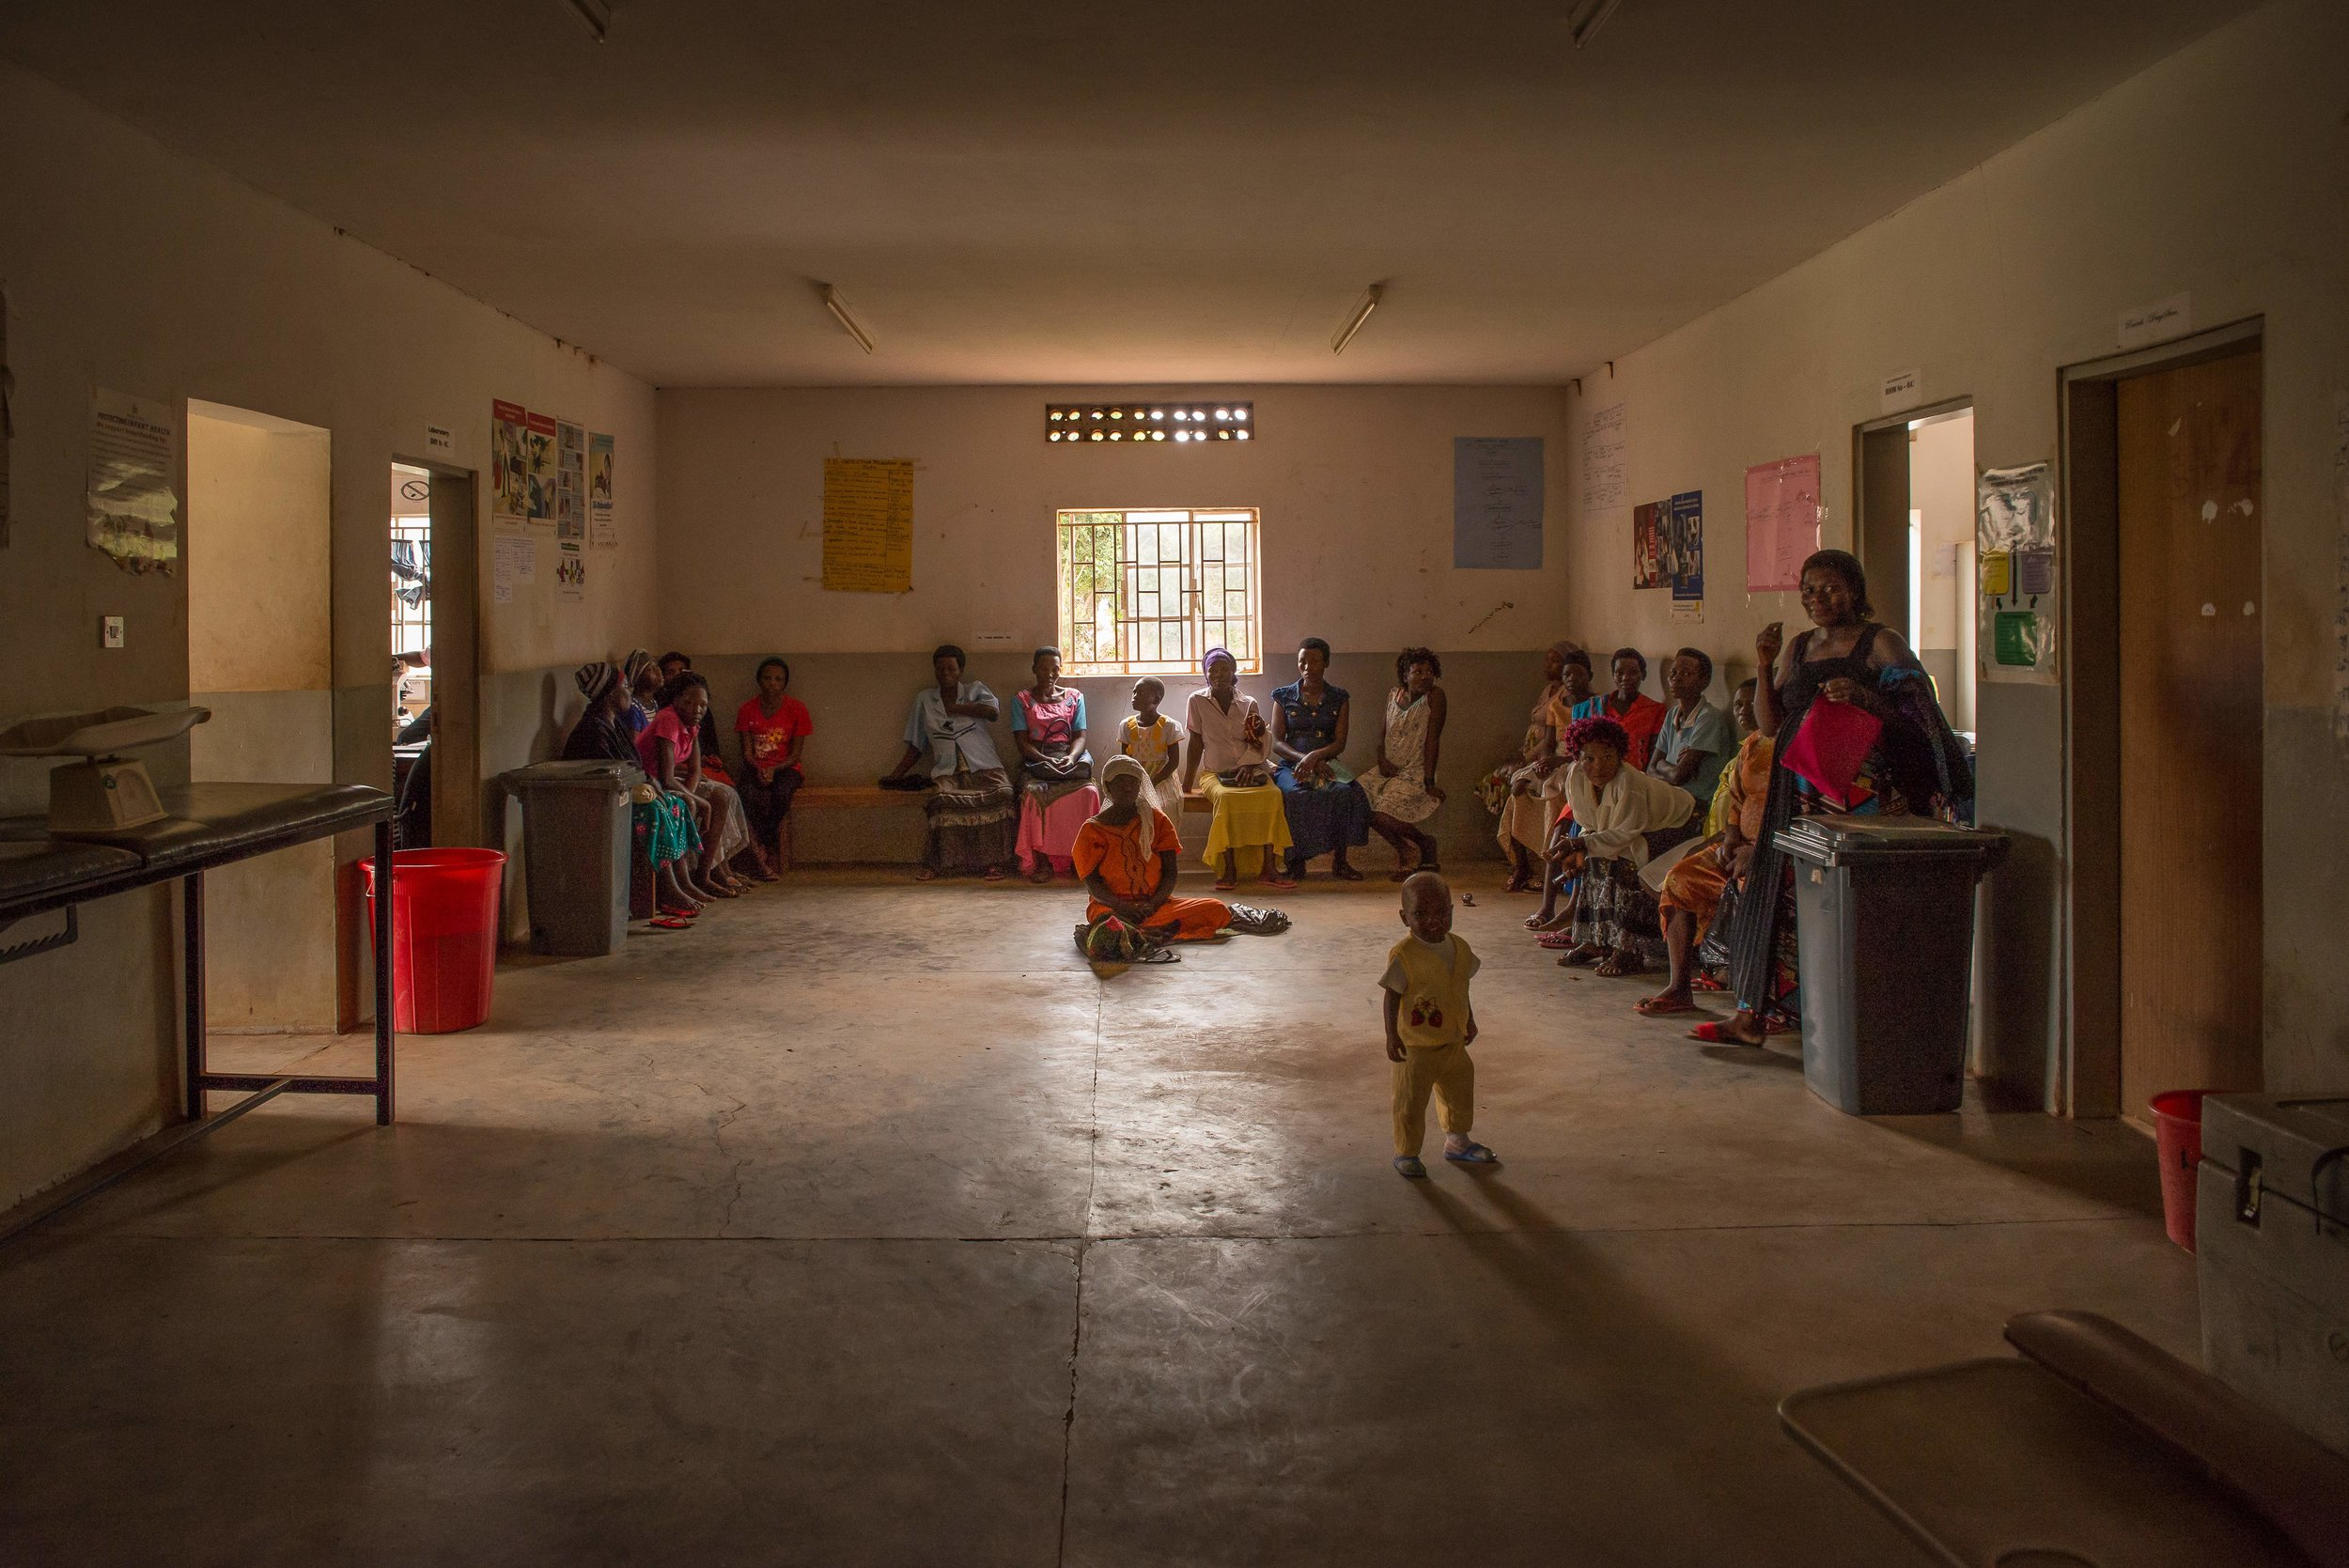 Patients wait in the lobby of Wabulungu Health Clinic III in Uganda. More rest on the grassy field outside.This clinic, along with a others in the area, have experienced shortages or complete stock-outs of HIV medication since November 2017 – some lasting as long as one or two months at a time. Photo: PRI/Katie G. Nelson